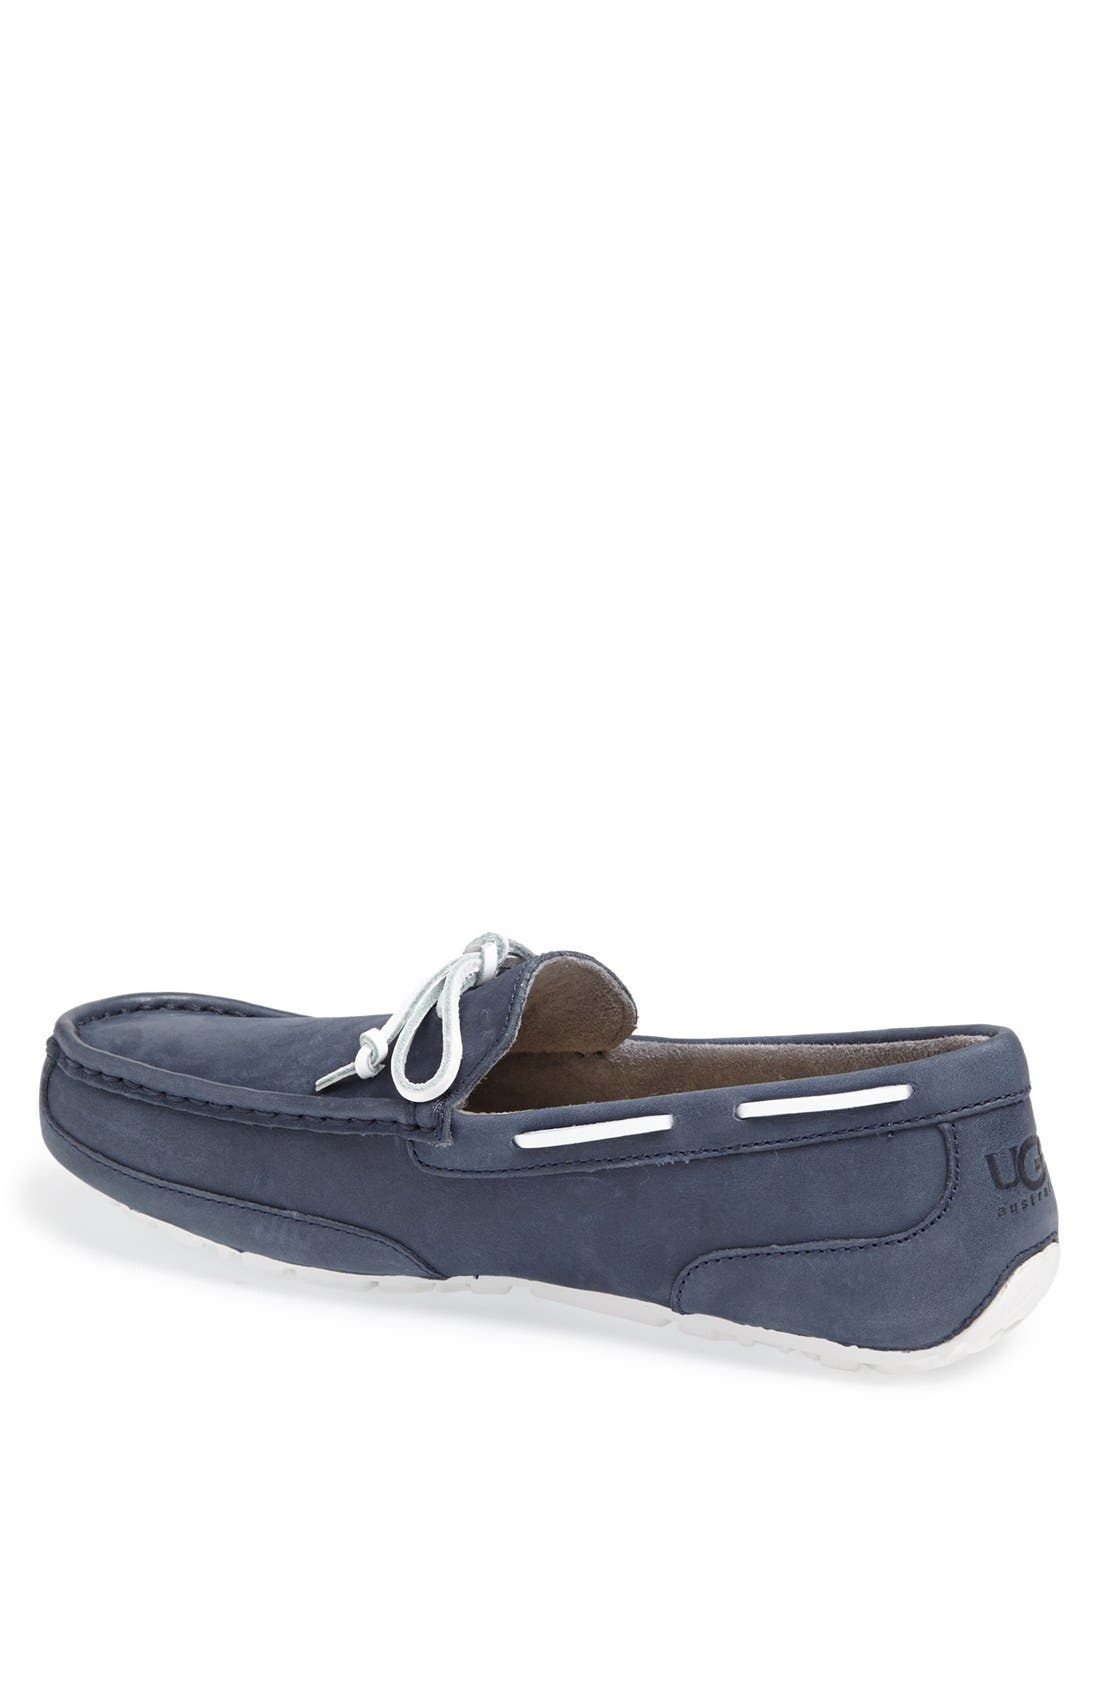 'Chester' Driving Loafer,                             Alternate thumbnail 16, color,